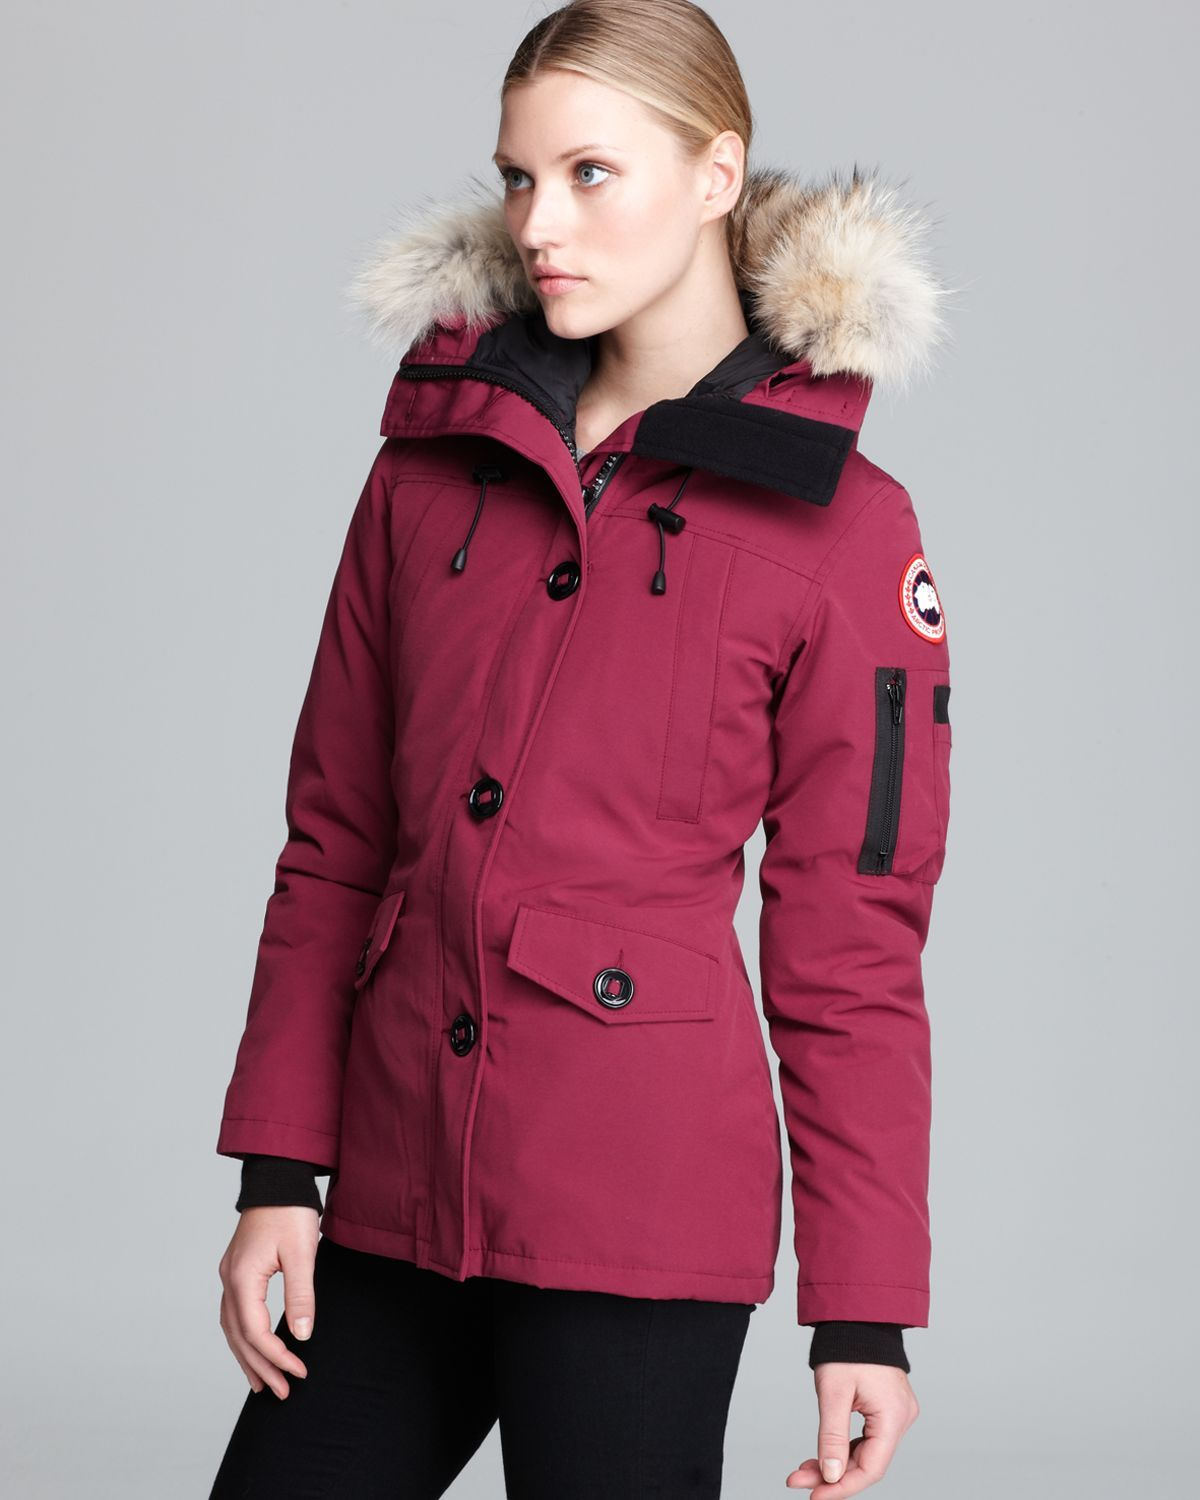 canada goose burgundy - Google Search